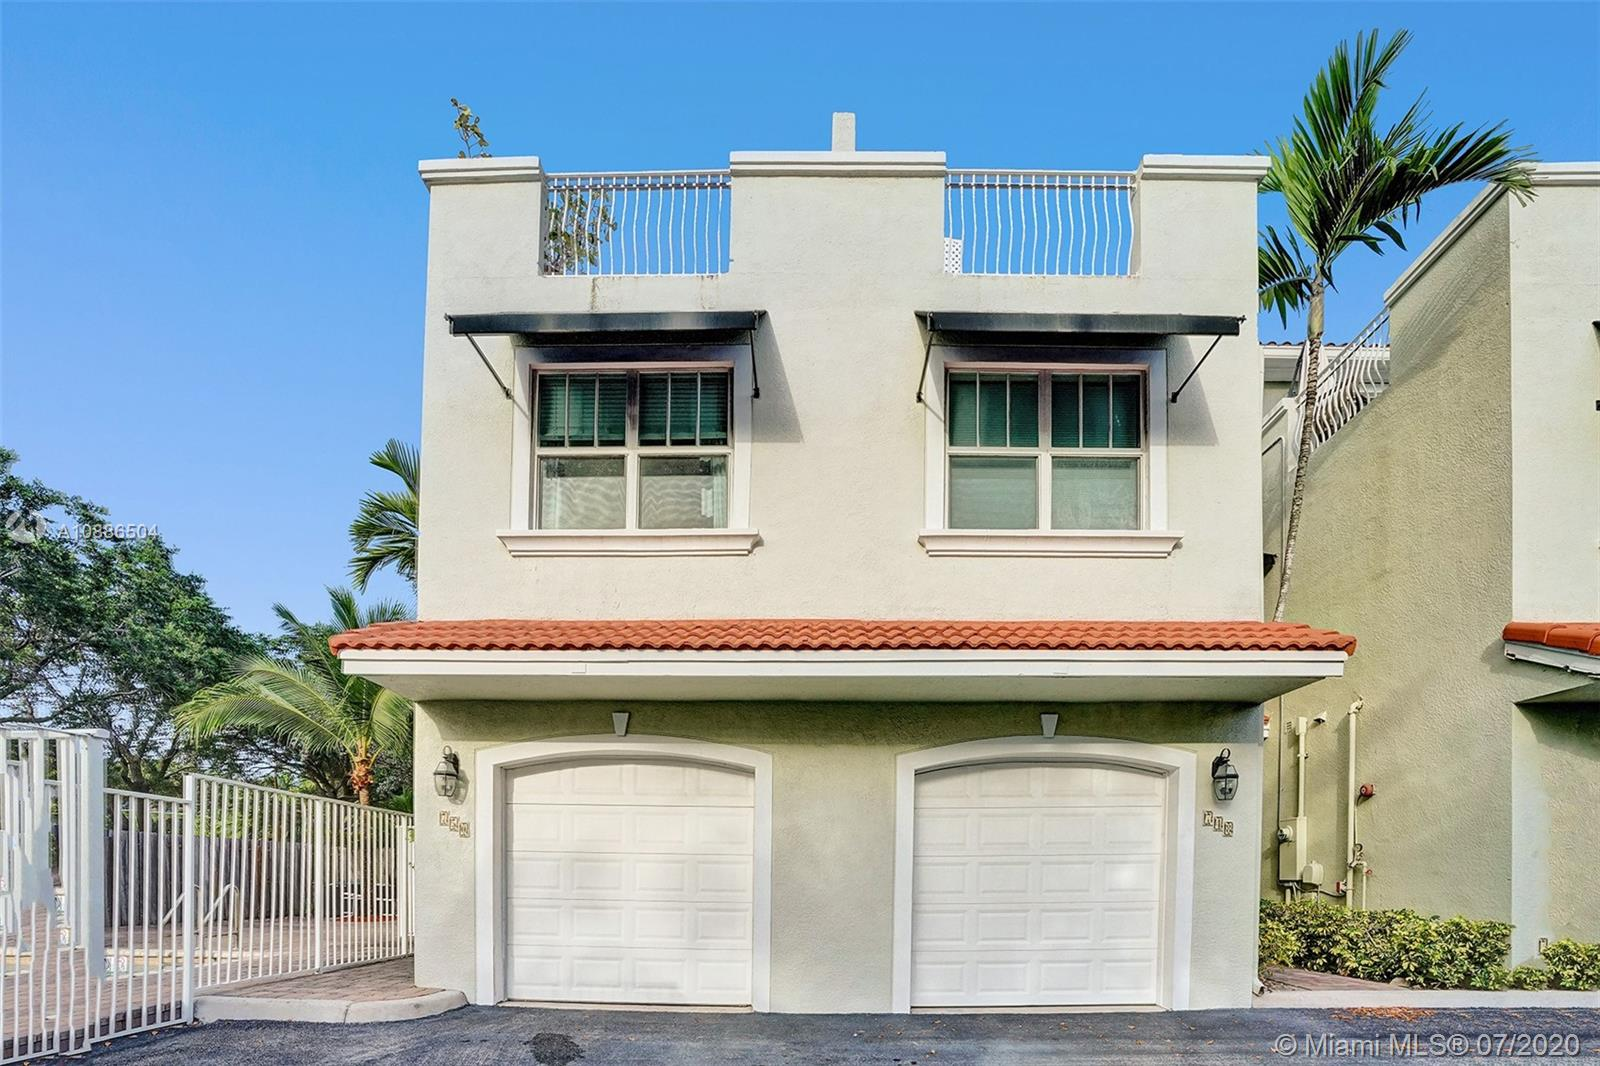 Live in beautiful Victoria Park ranked highest in walk-ability, you will be minutes away from the beaches, the Galleria and with Holiday park in your backyard is the ultimate bonus. This tri-level townhouse is nestled in the corner of a small and quiet complex. Open and airy kitchen features stainless steel appliances and granite counter tops. Ground level half bath. Abundant living spaces will accommodate large furniture and full size dining table. This 3 level townhouse has 3 bedroom and 2 baths in the 2nd floor, 1 bedroom and a large family room in the 3rd floor. Roof top decks offerbreathtaking views of Holiday park and downtown. low maintenance fee. This is truly Florida living at it's best.